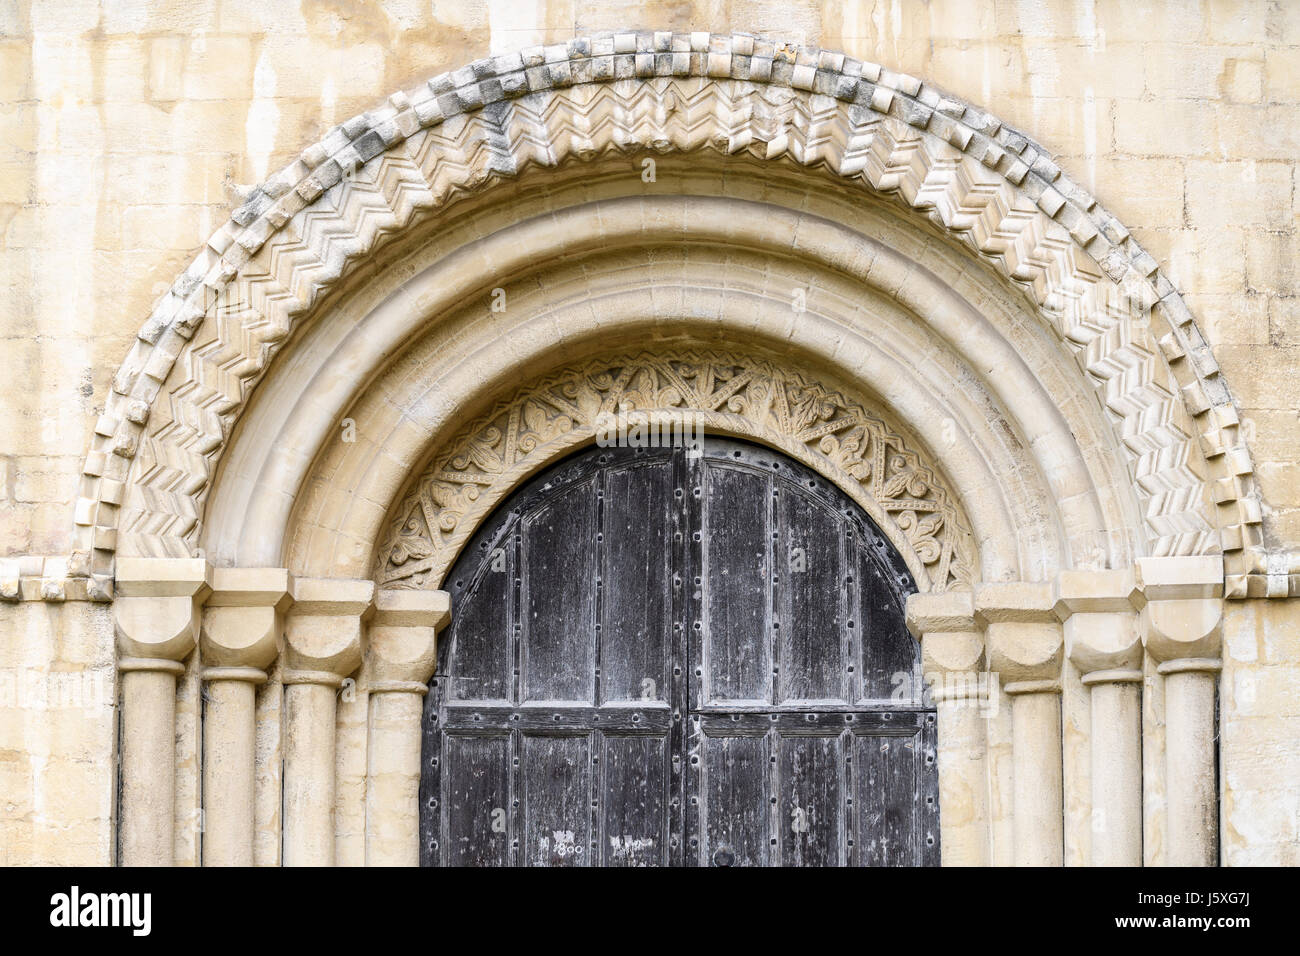 Intricate stone arch above a door on the south side of the medieval christian cathedral at Peterborough, England. Stock Photo